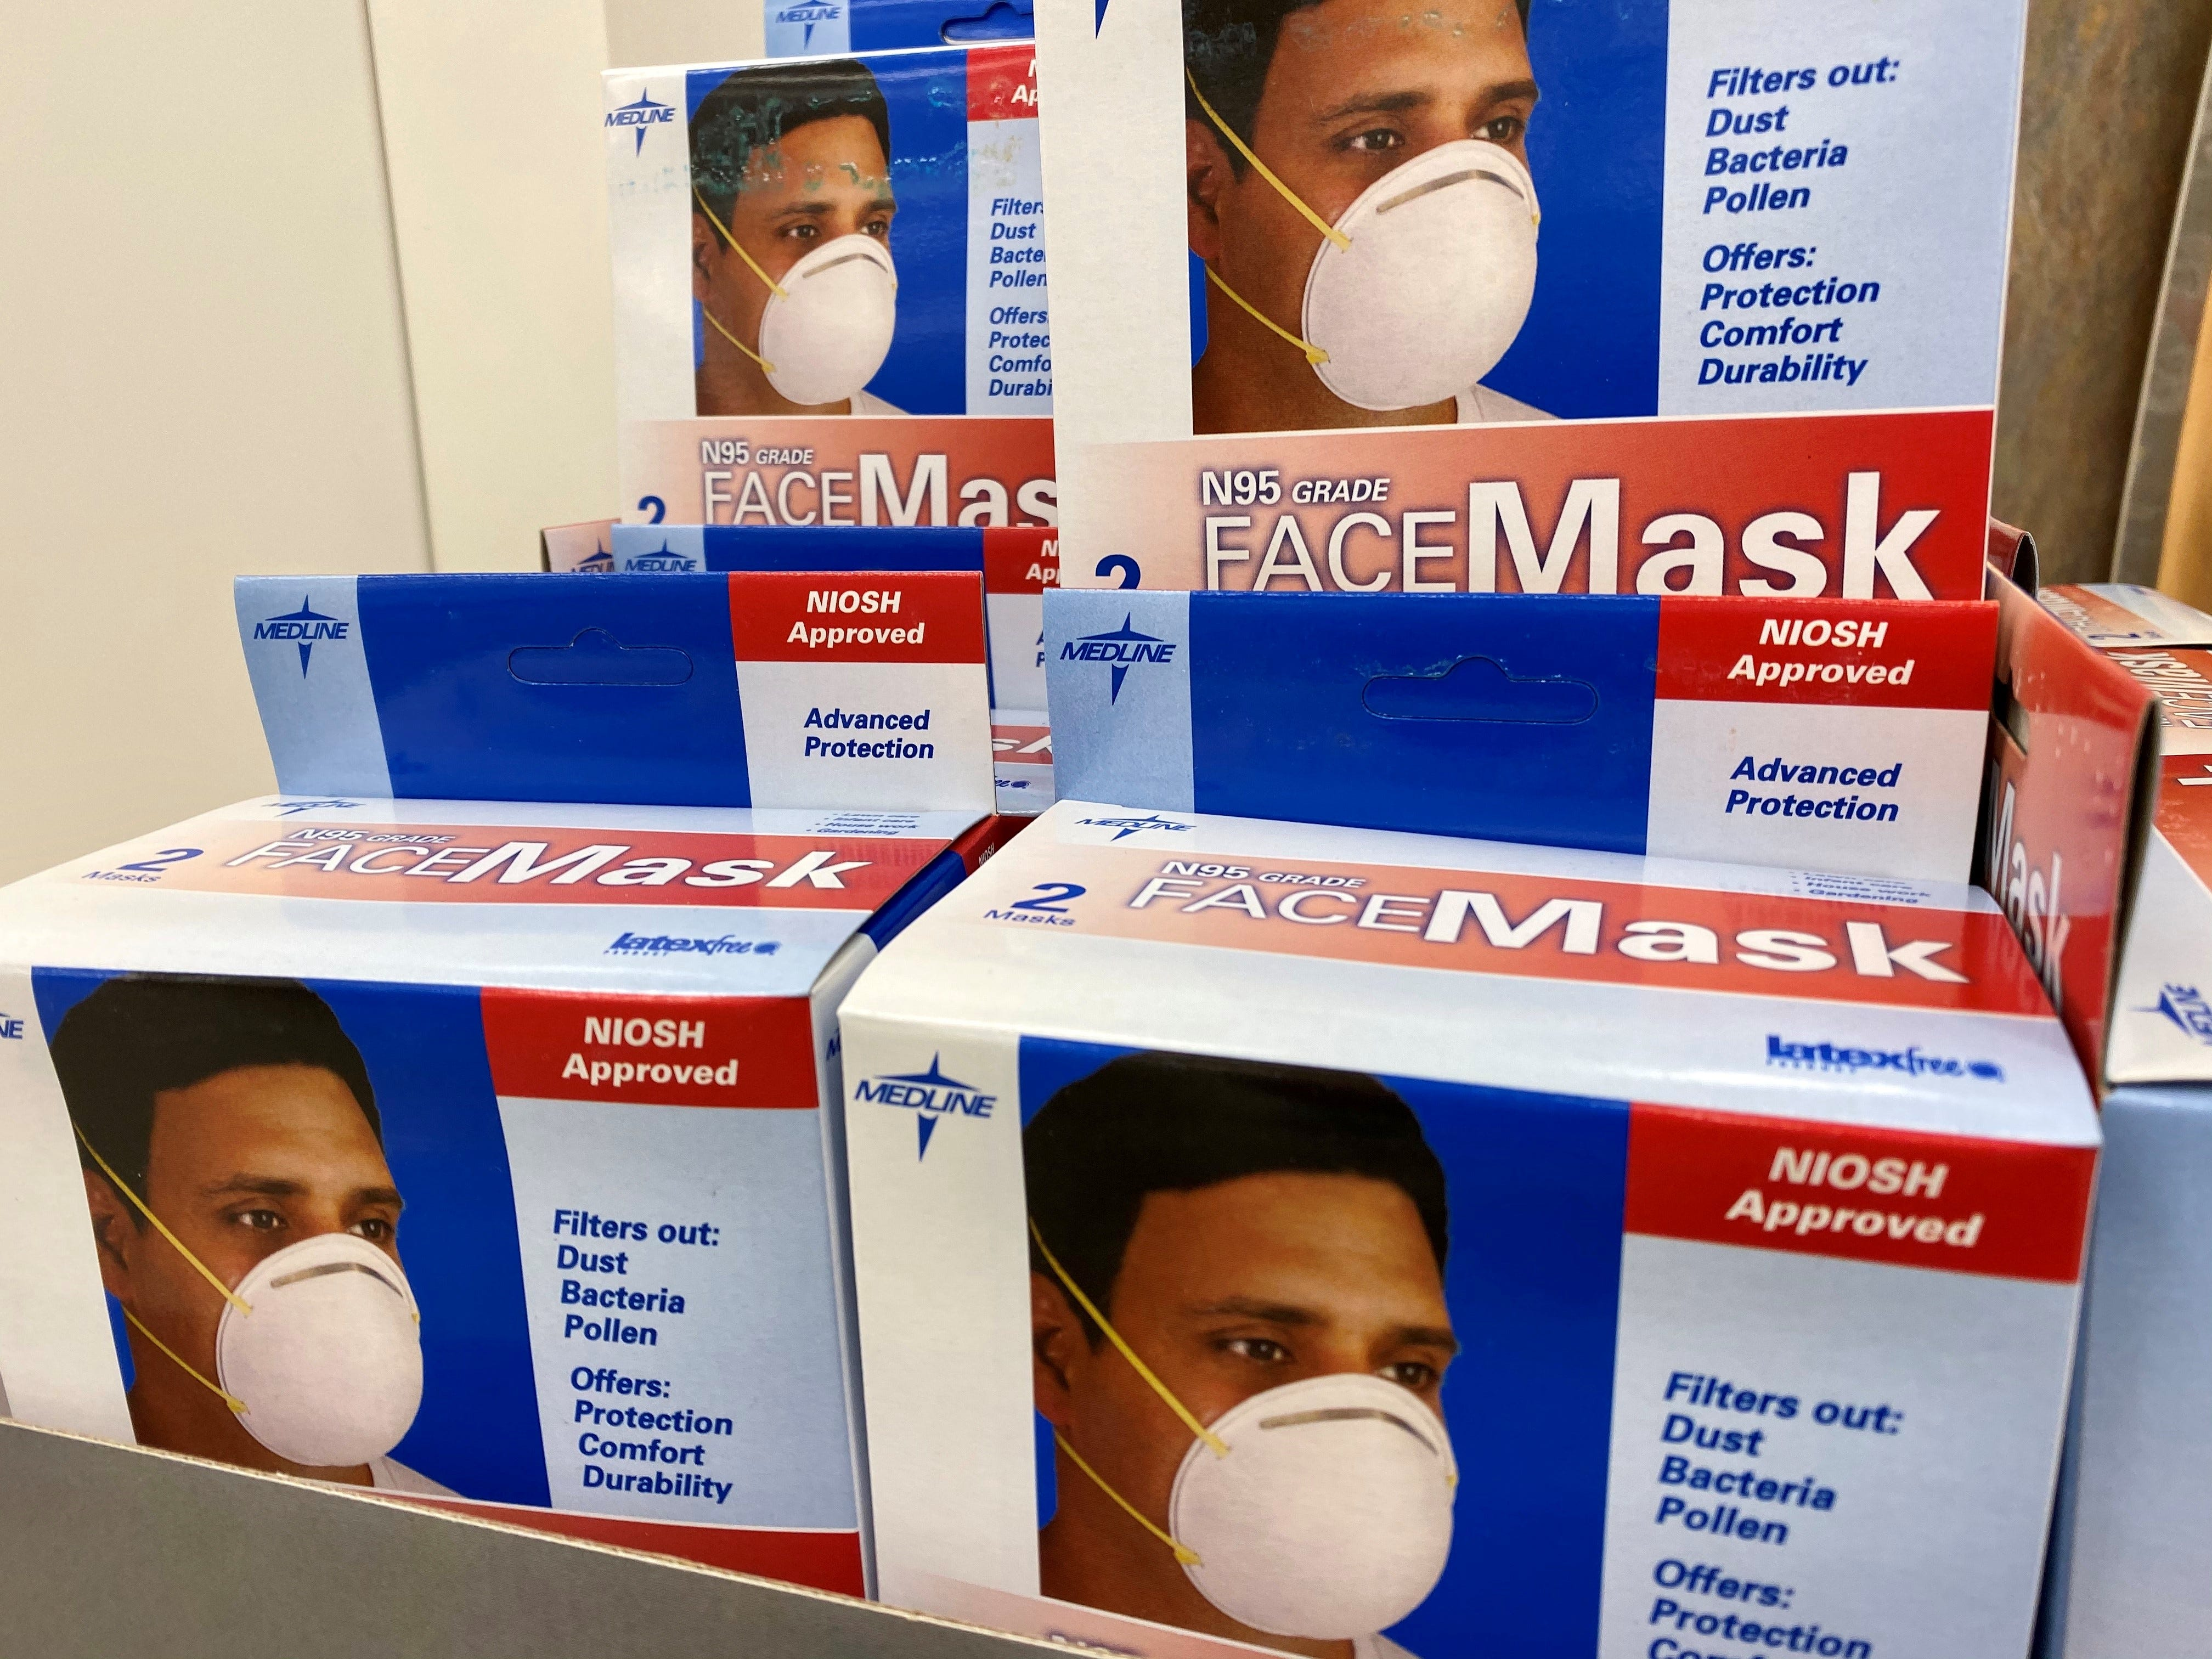 Coronavirus Price Gouging Charges Purell For 149 20 Face Masks